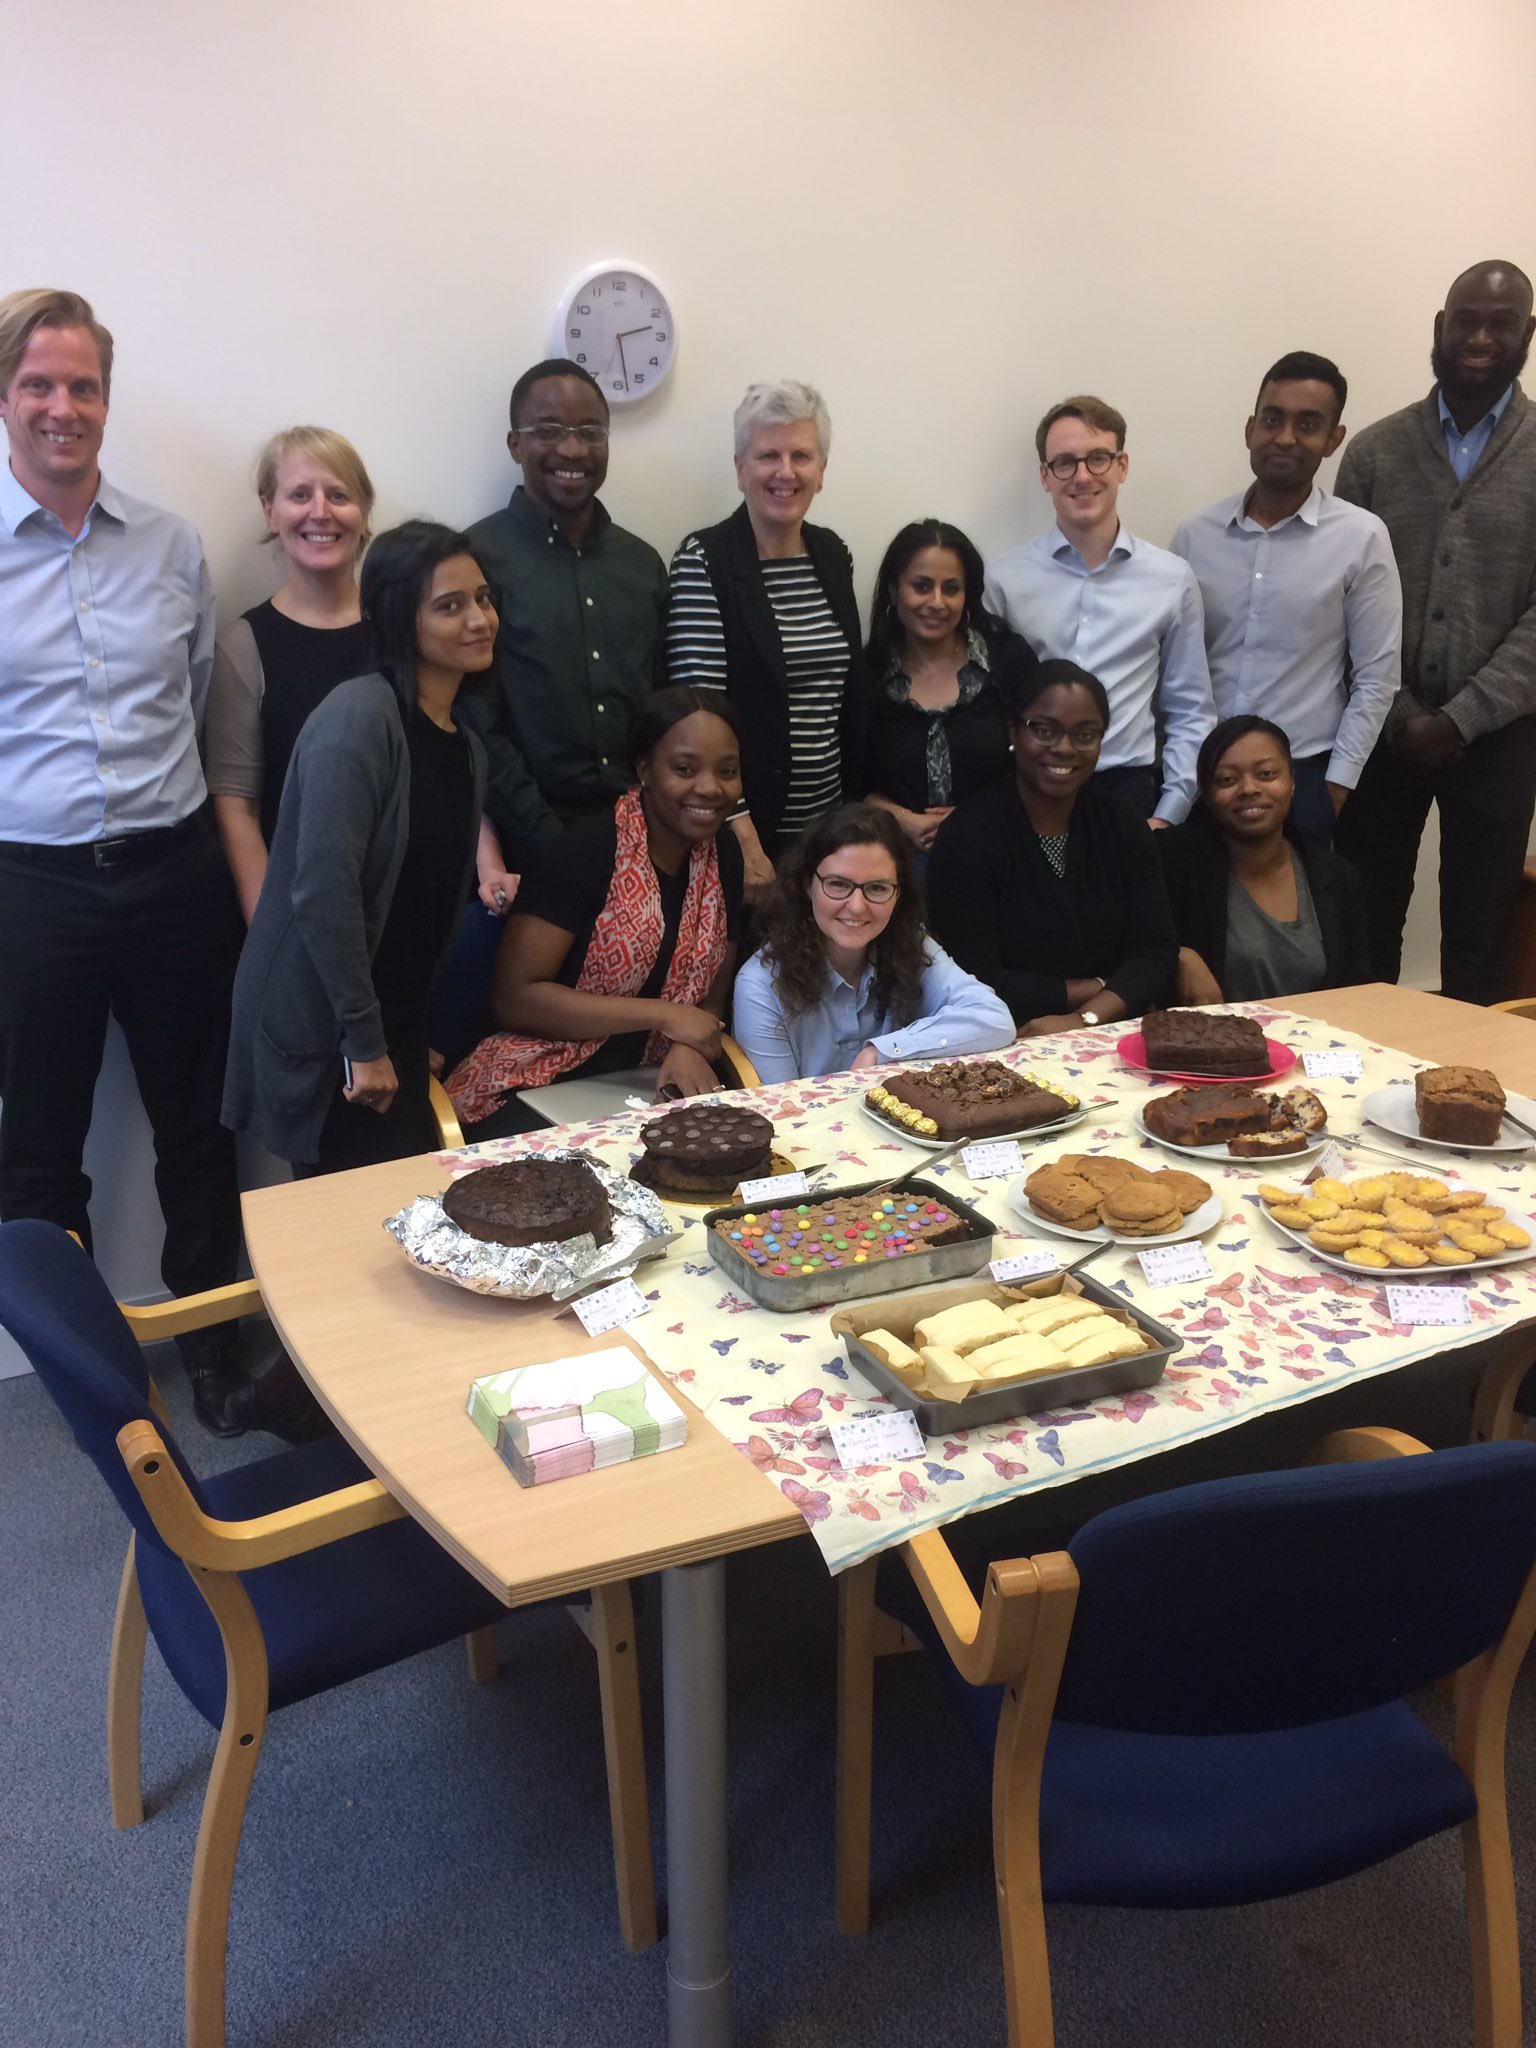 Goodman Ray supporting a great fundraising initiative! @greatlegalbake #GreatLegalBake https://t.co/KDHGehoCL3